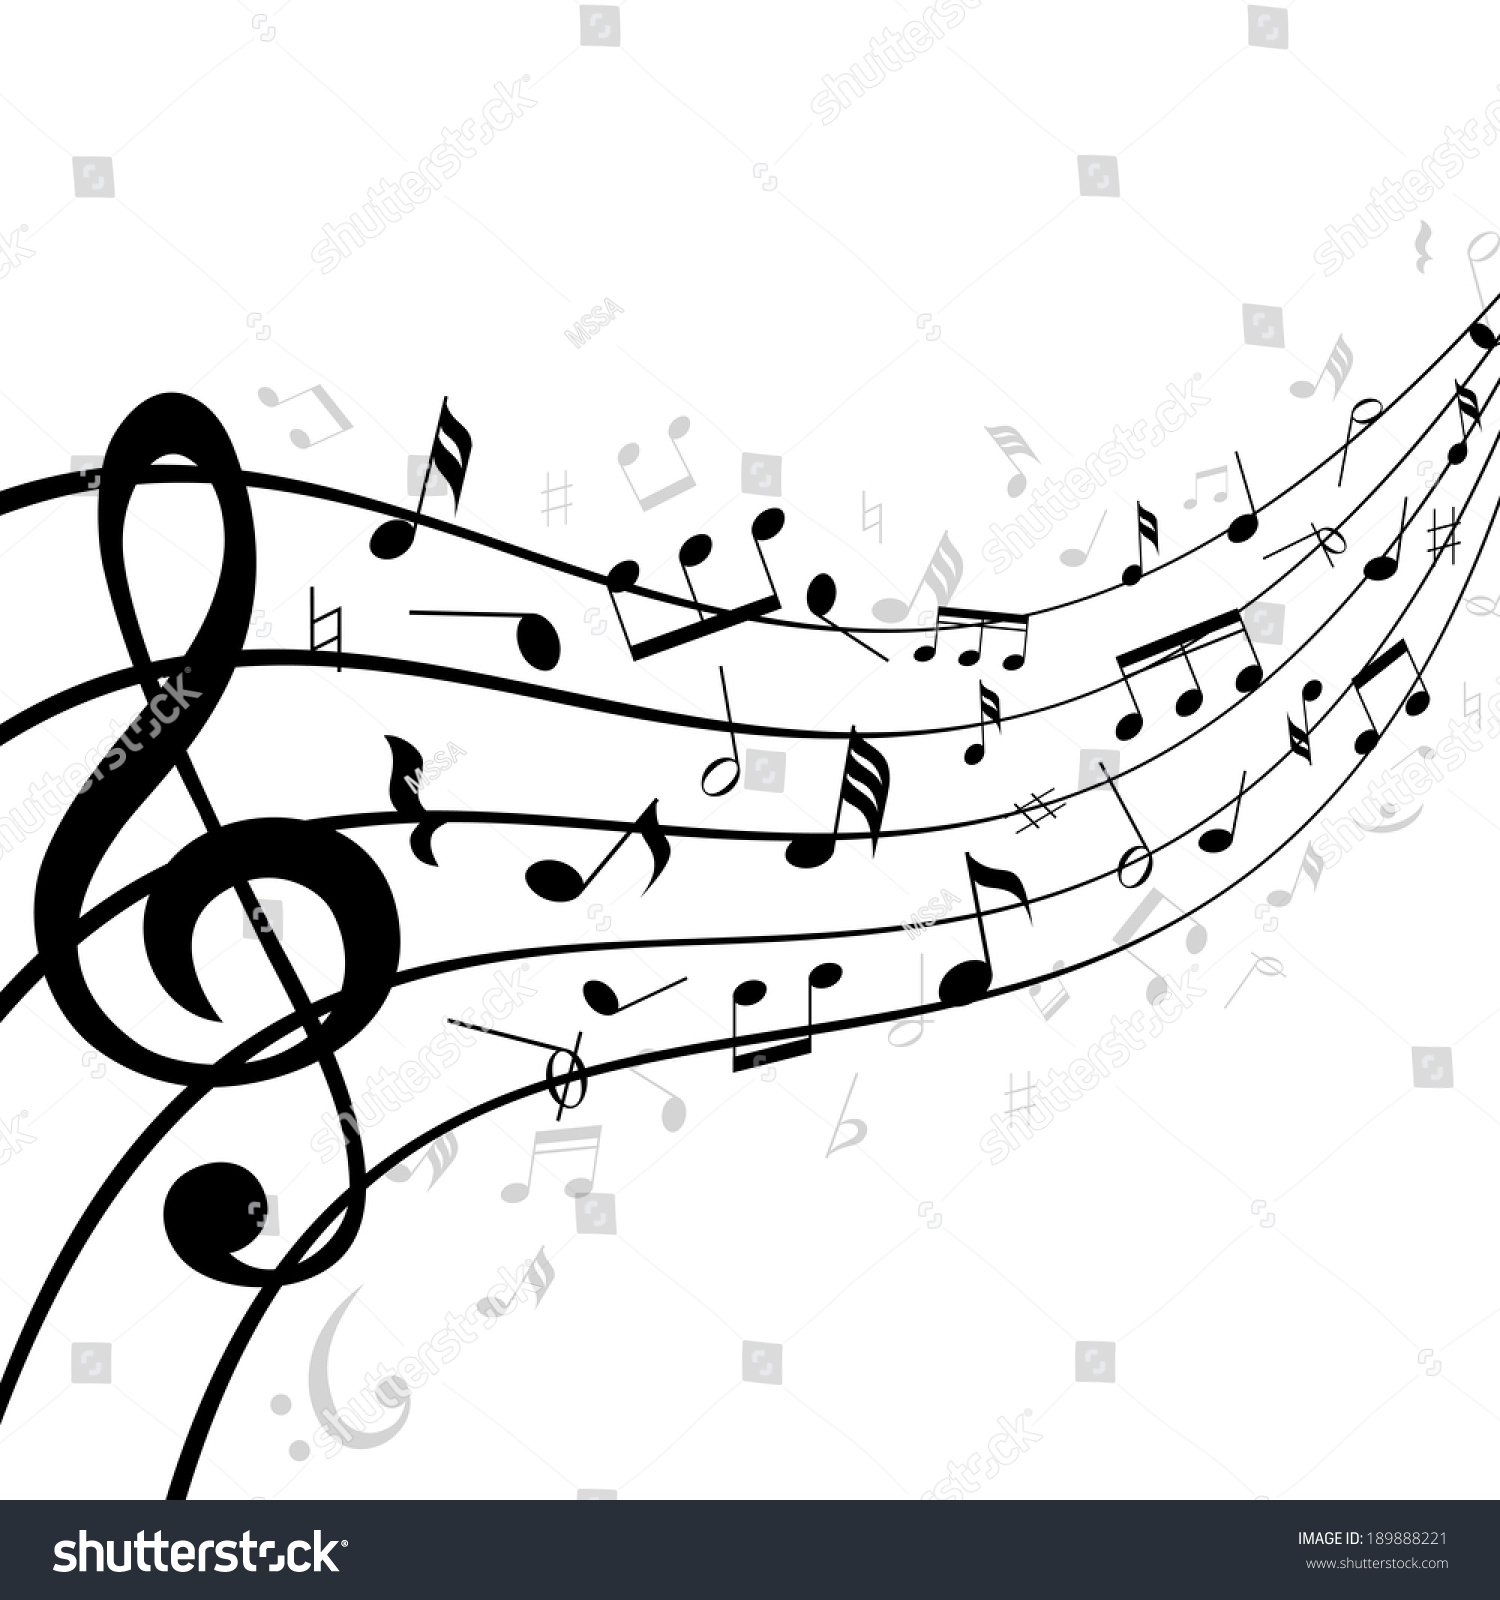 music notes on stave staff consisting stock vector 189888221